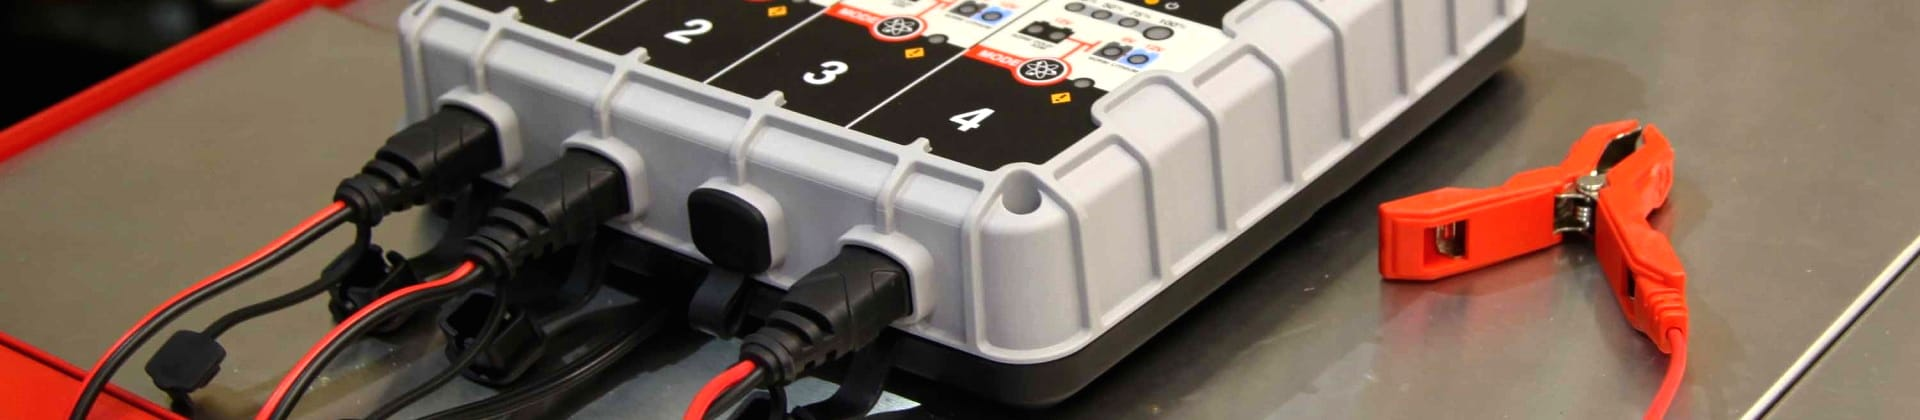 Best Marine Battery Chargers Reviewed in Detail